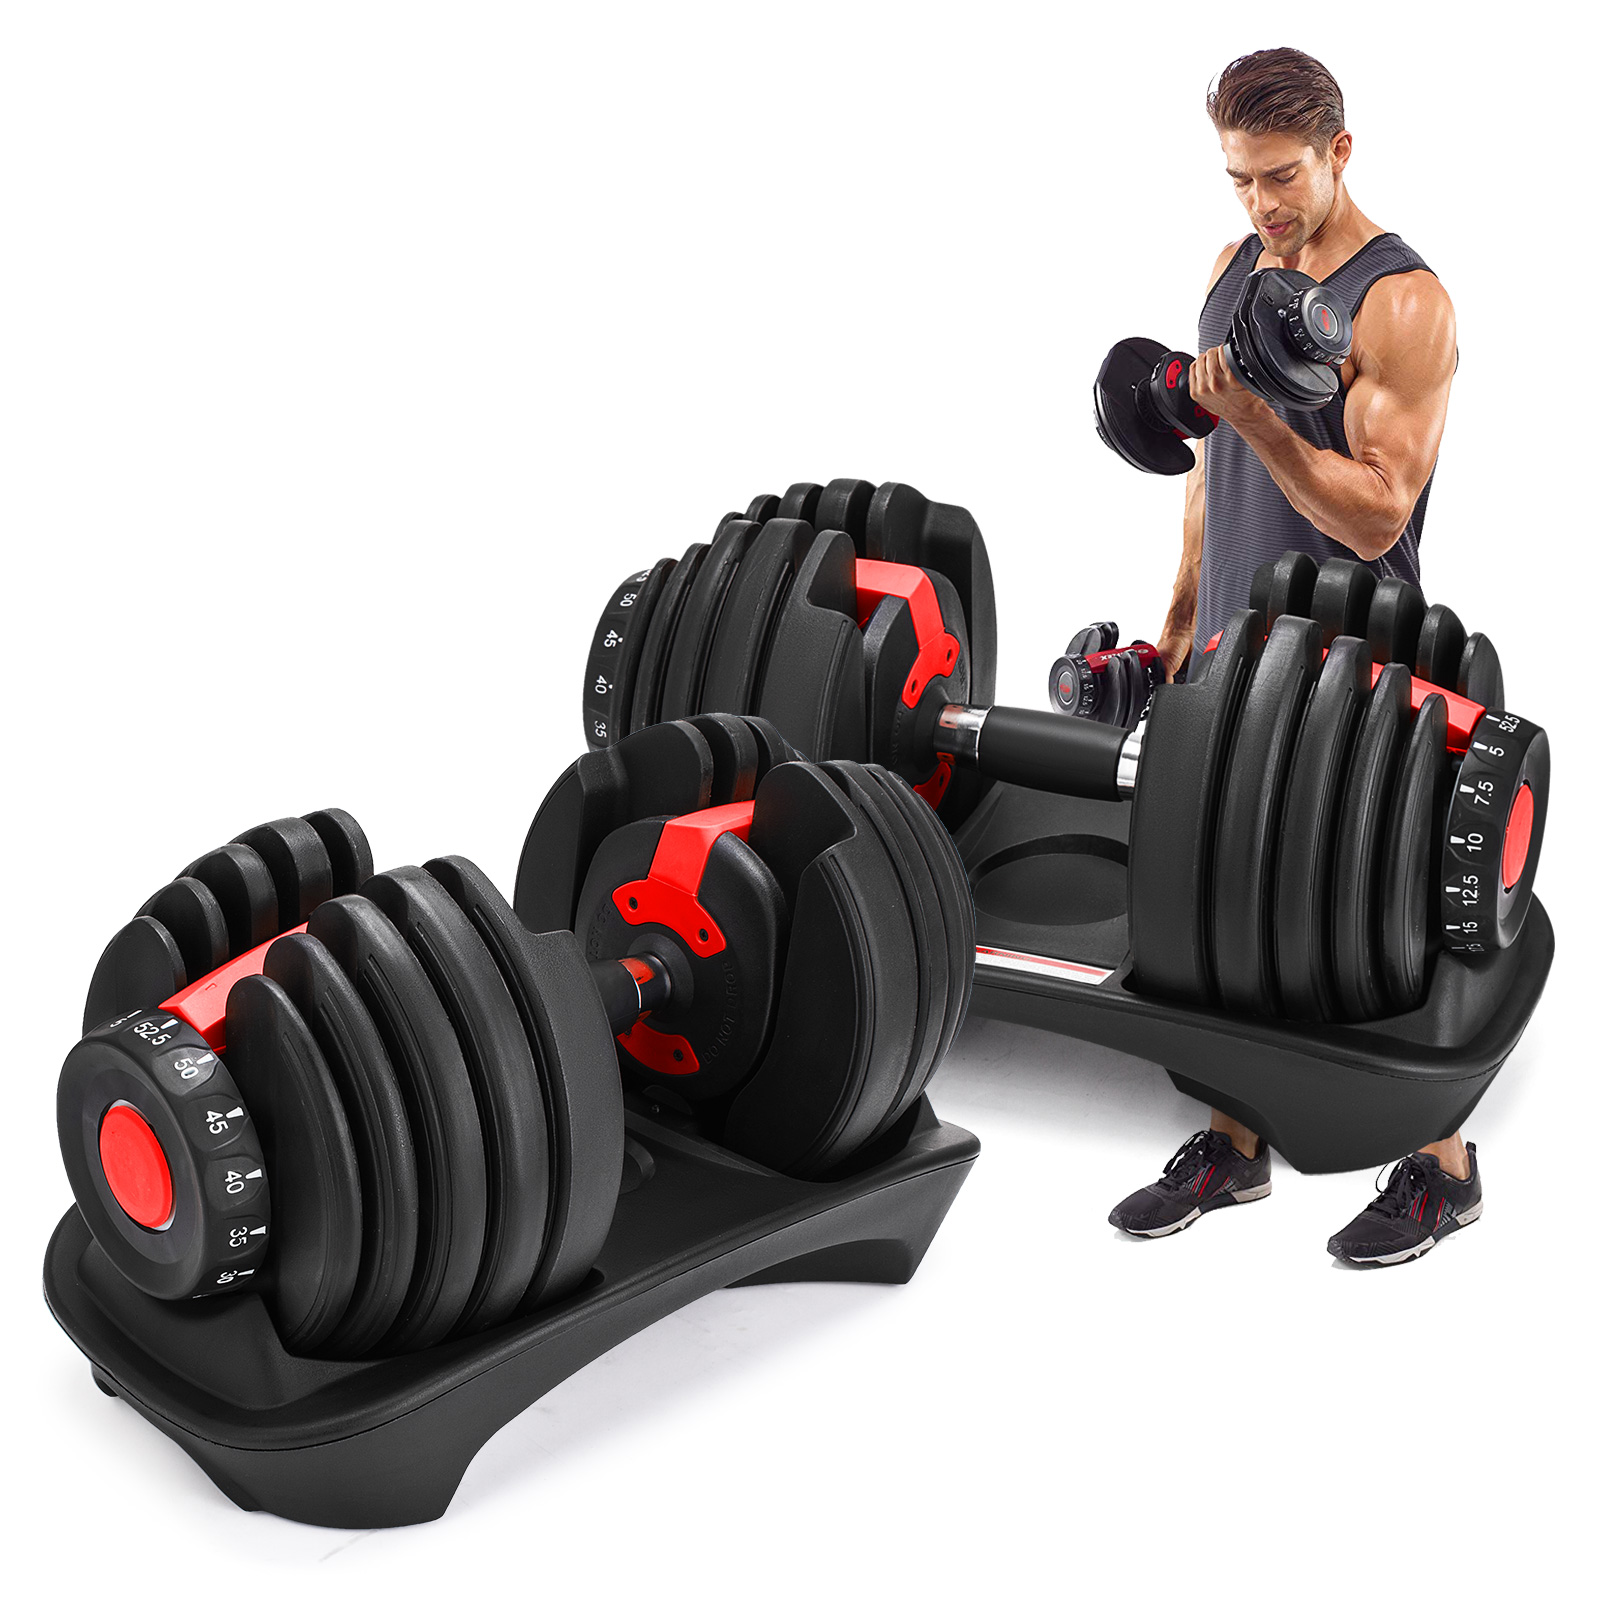 06a5abbf959 Details about Selectable Dumbbells Set - Adjustable Weights for Home Gym  Training - 24kg